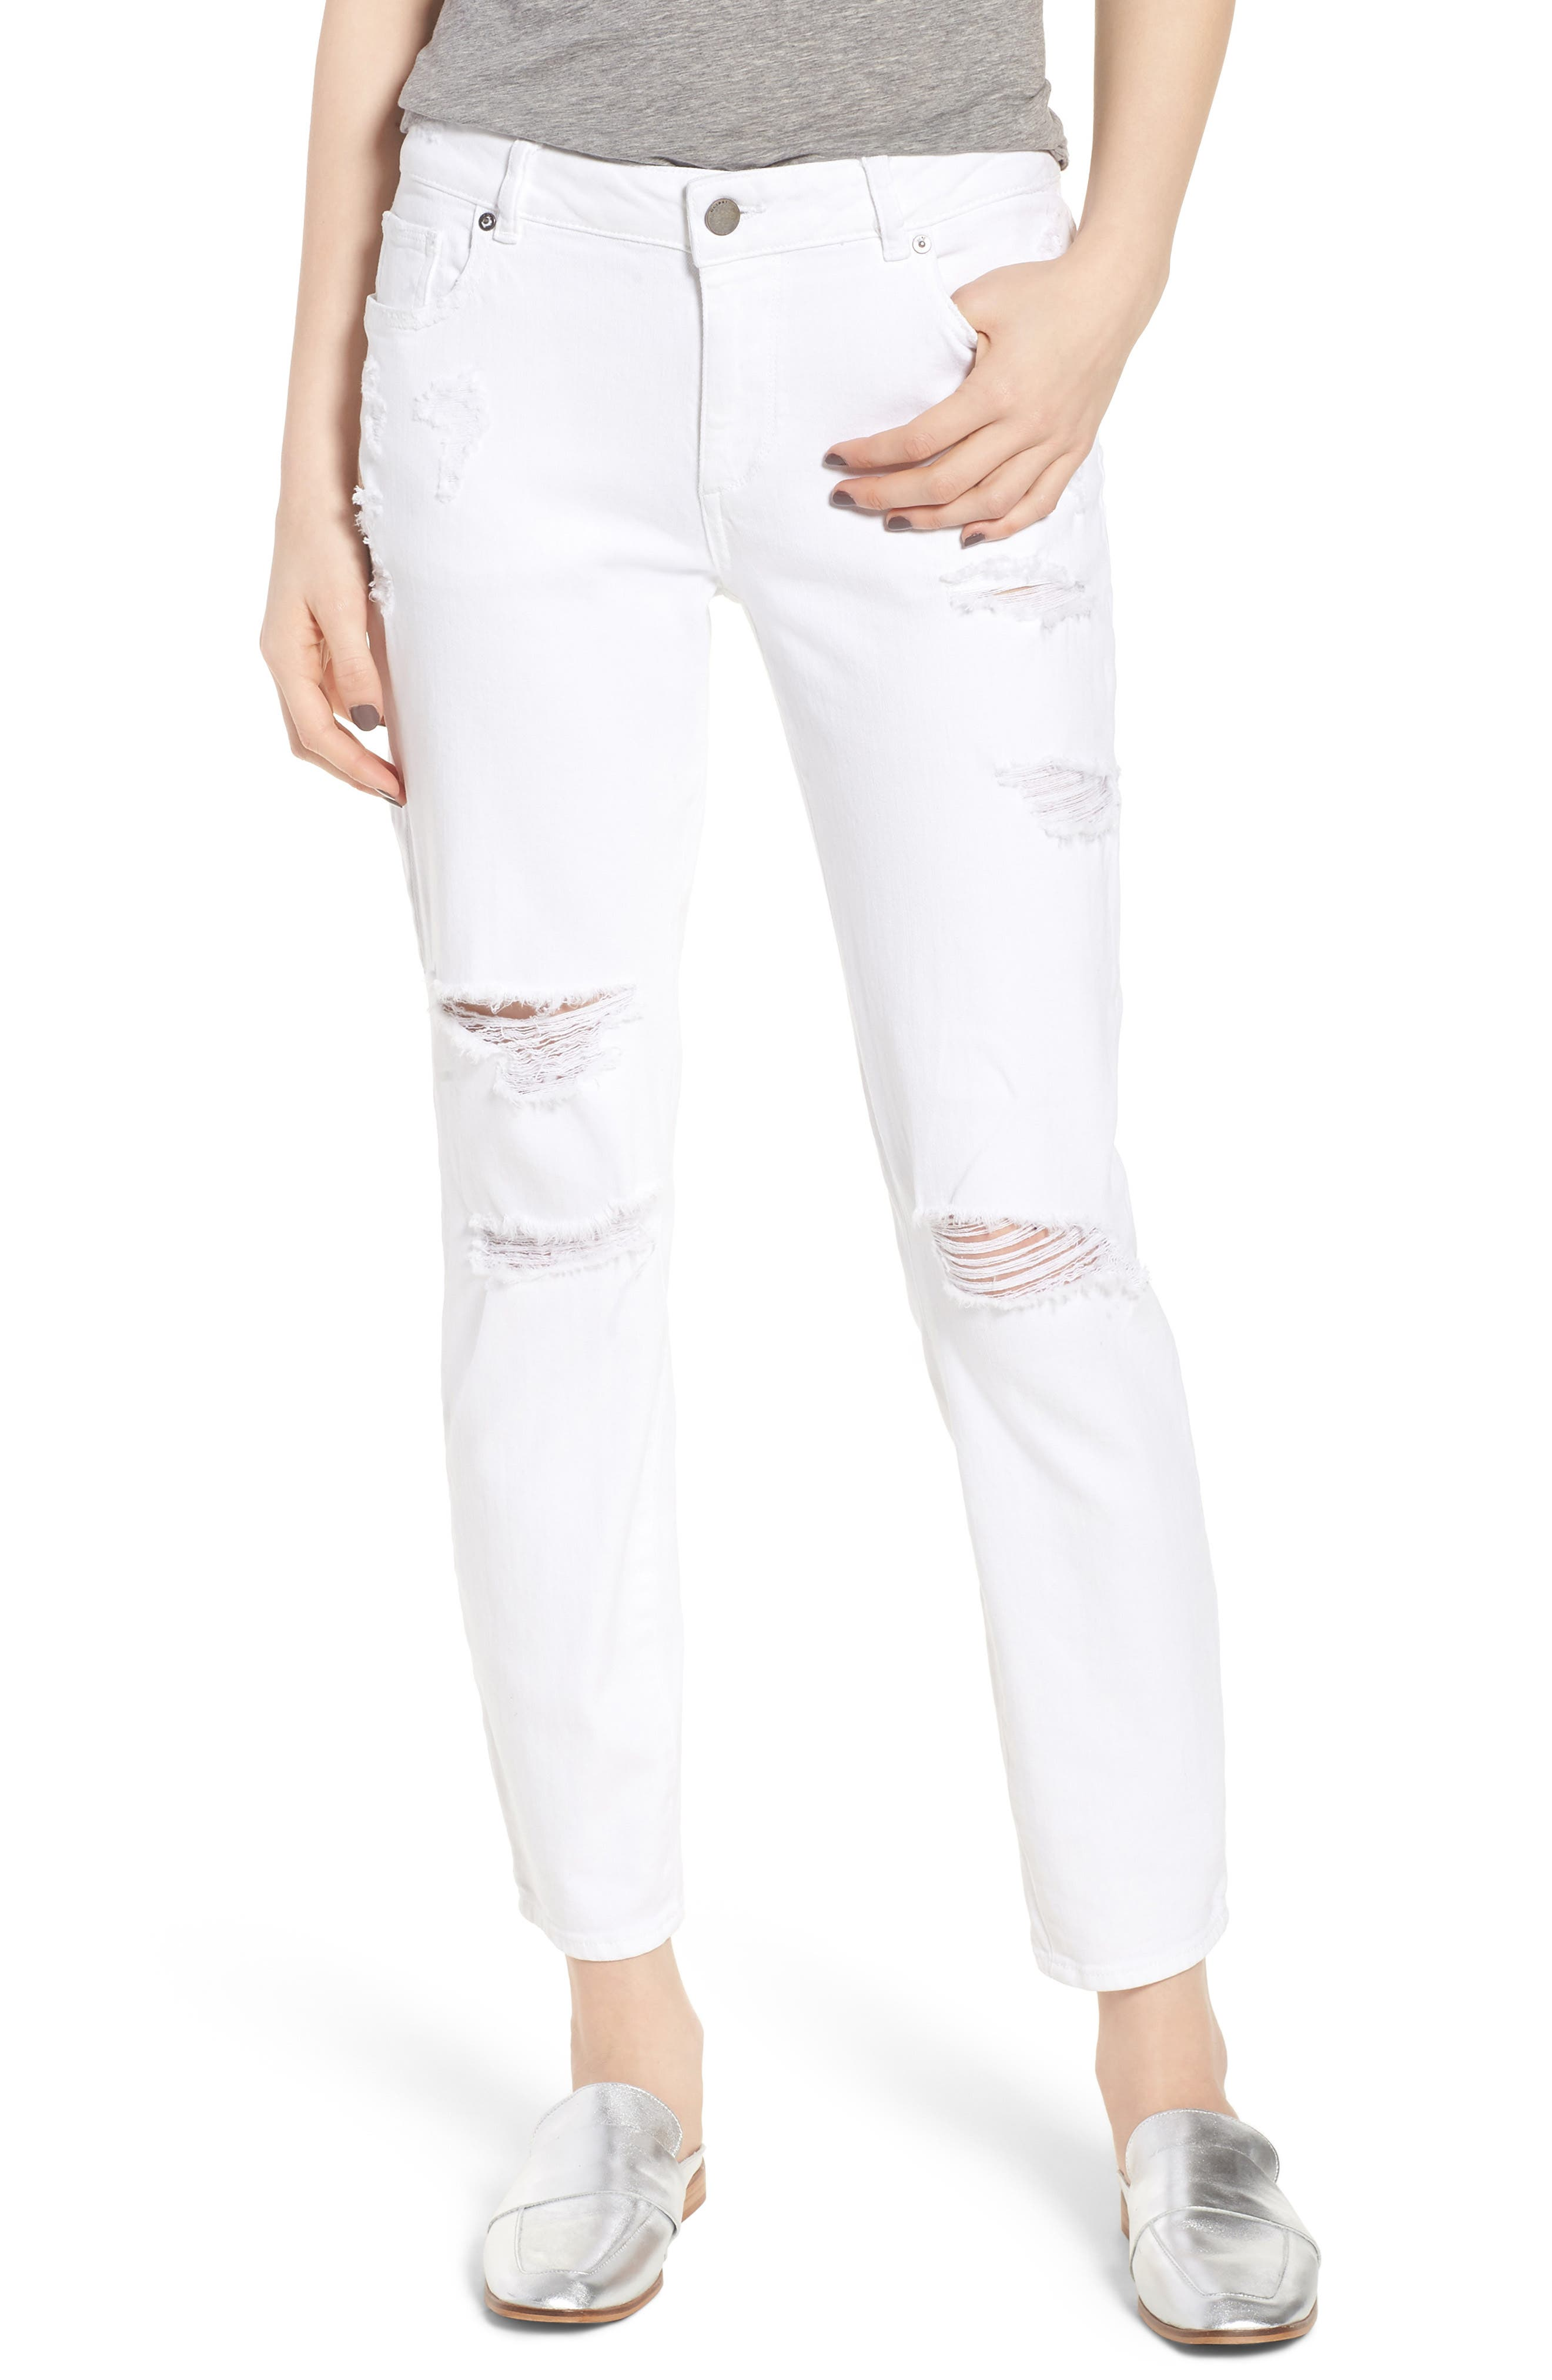 Davis Ripped Ankle Girlfriend Jeans,                             Main thumbnail 1, color,                             Cupertino